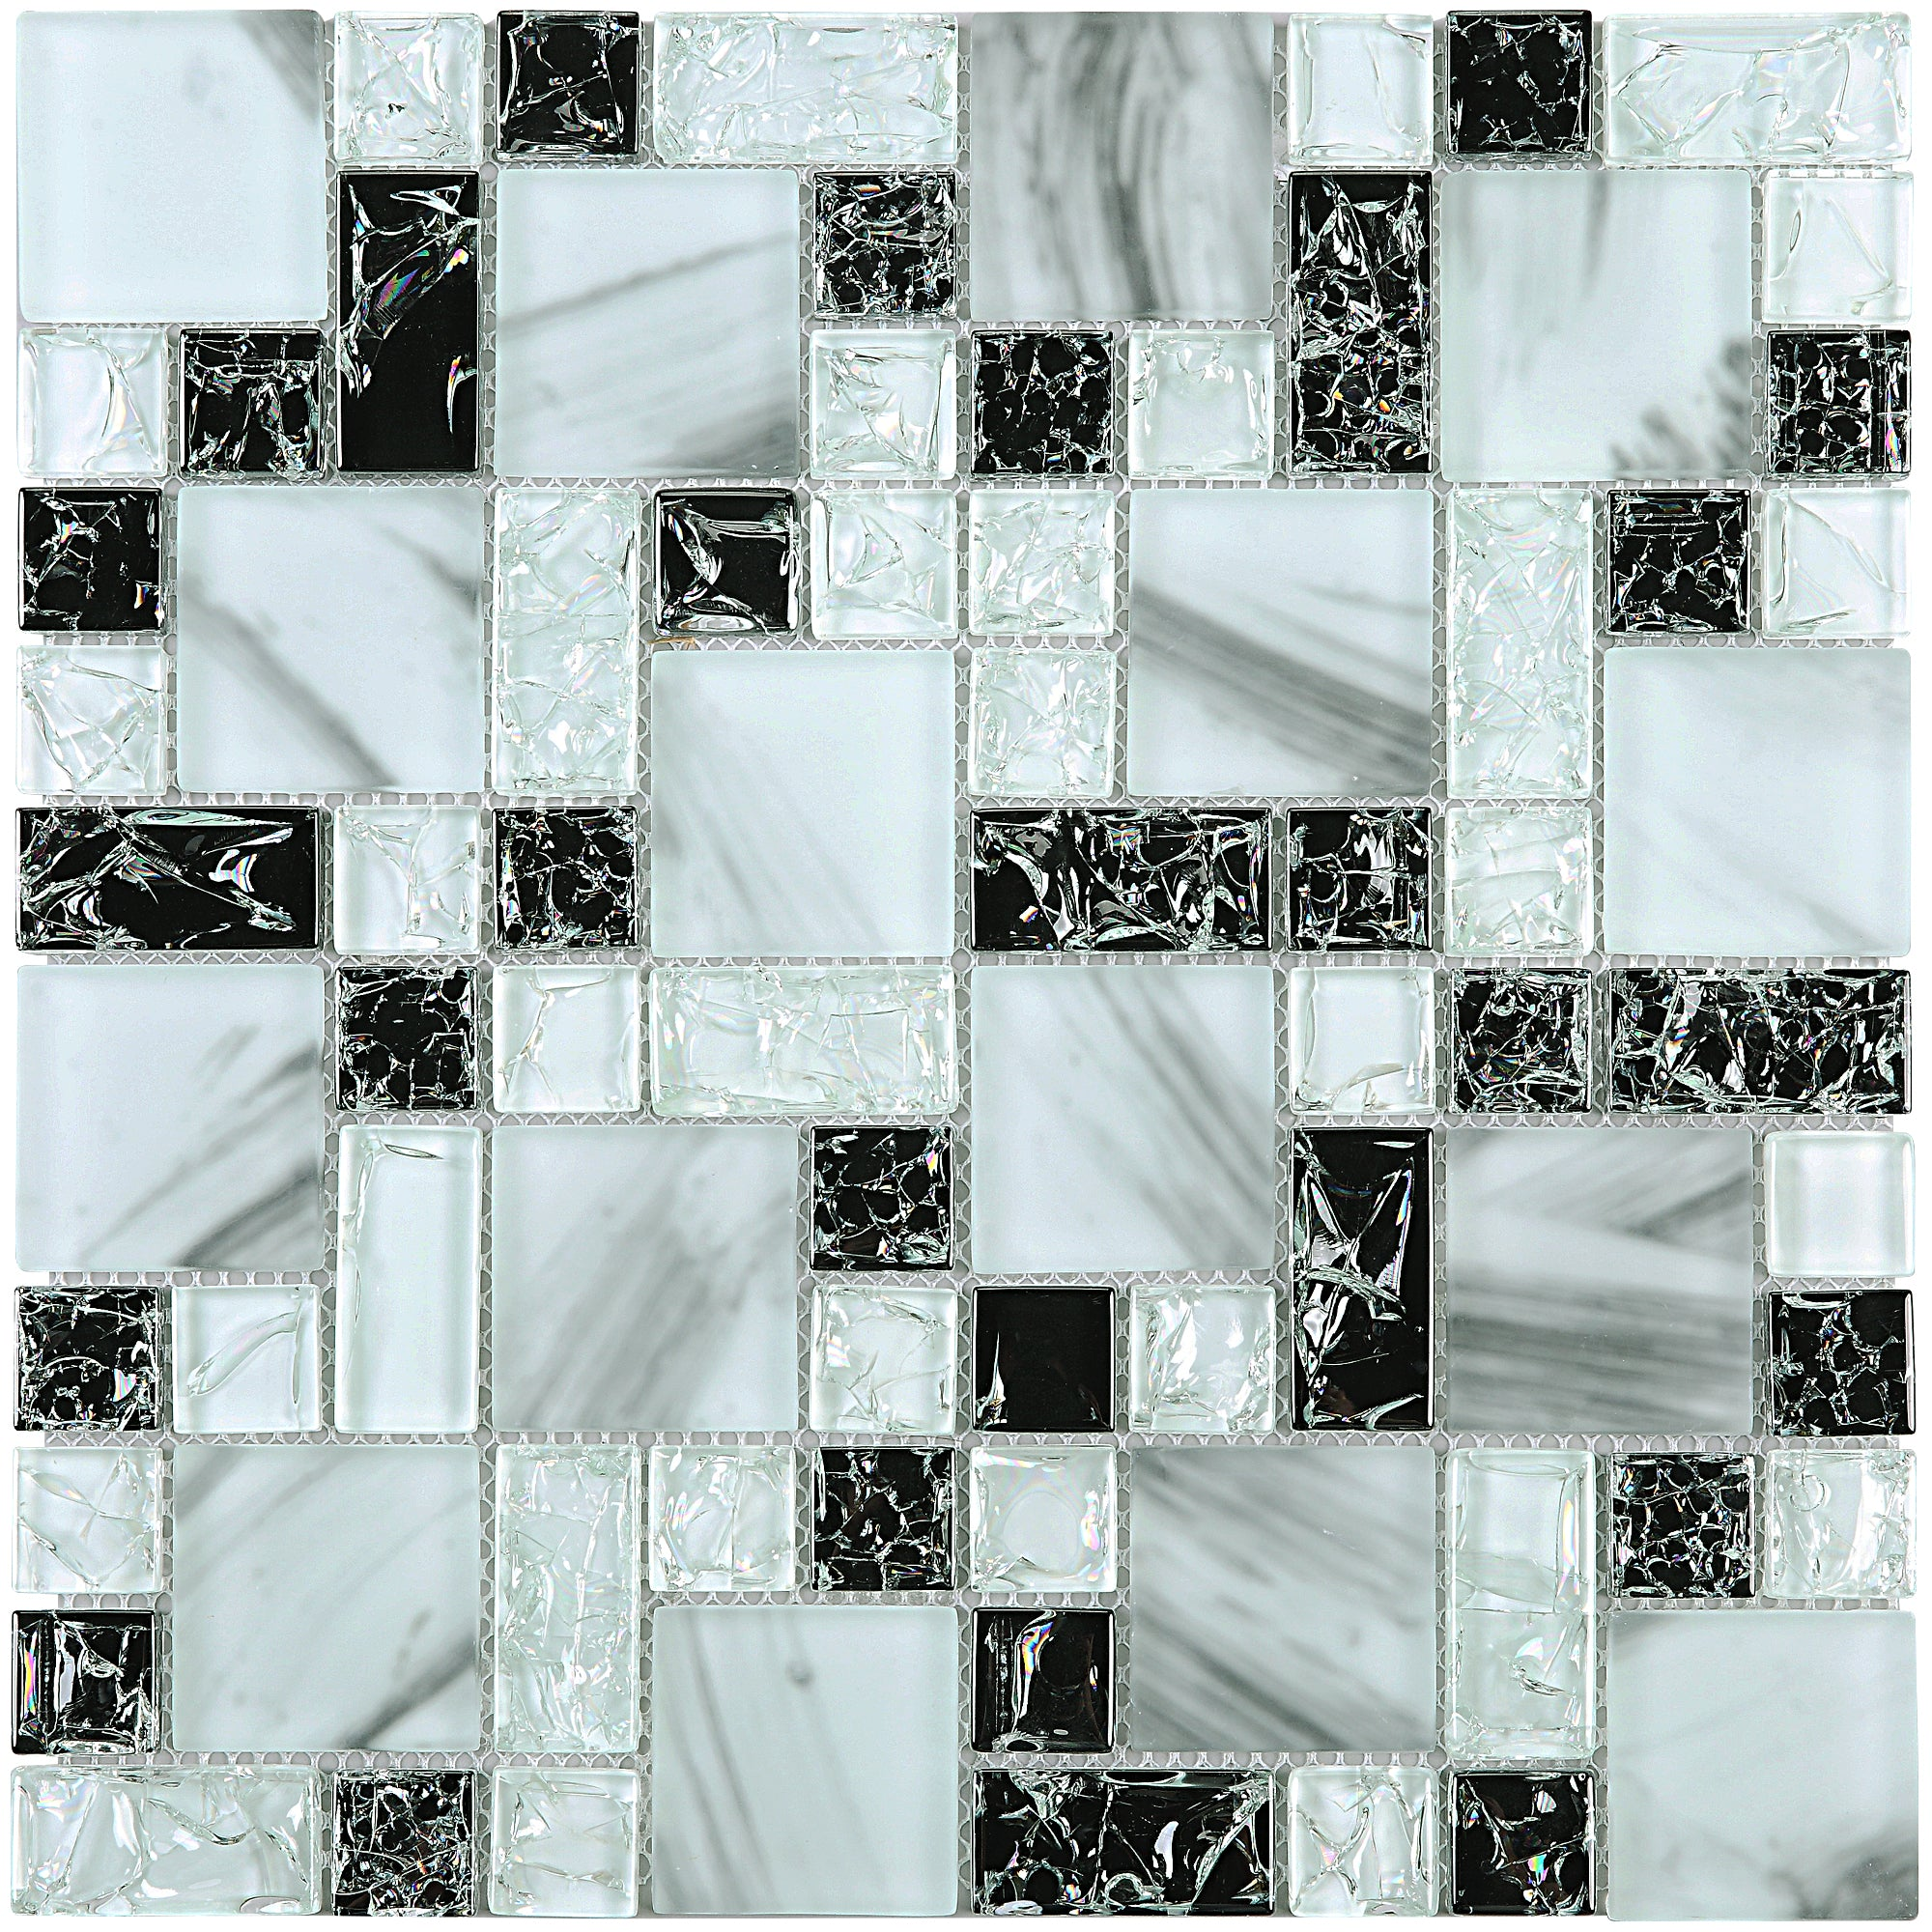 Tcesg 03 Random Square Crackled Glass Mosaic Tile In Black And White Tile Generation